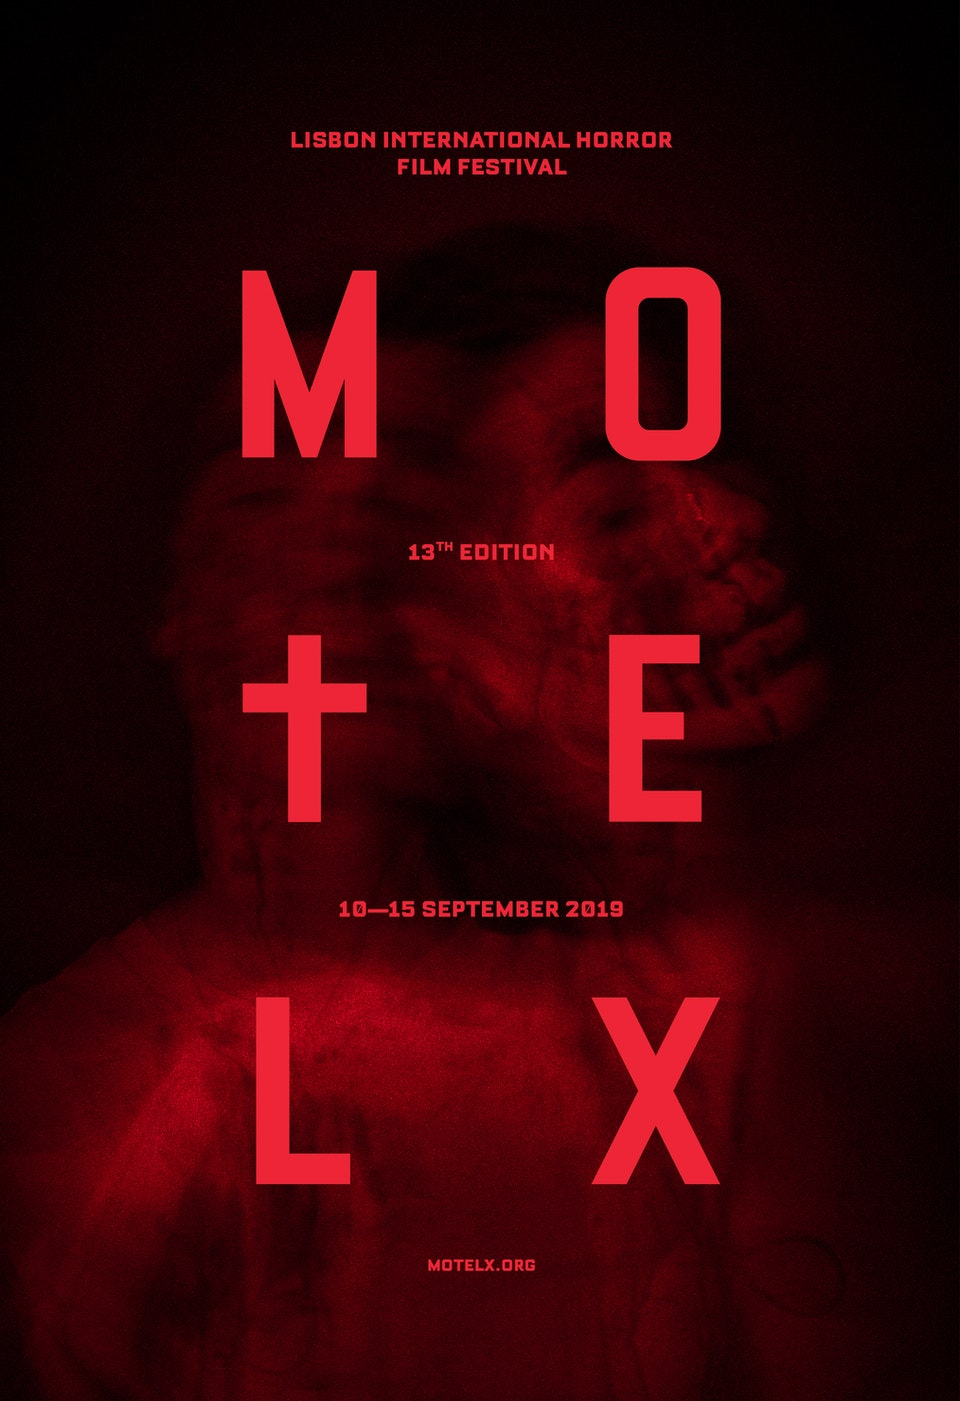 RUI VIEIRA - Motelx - Lisbon International Horror Film Festival